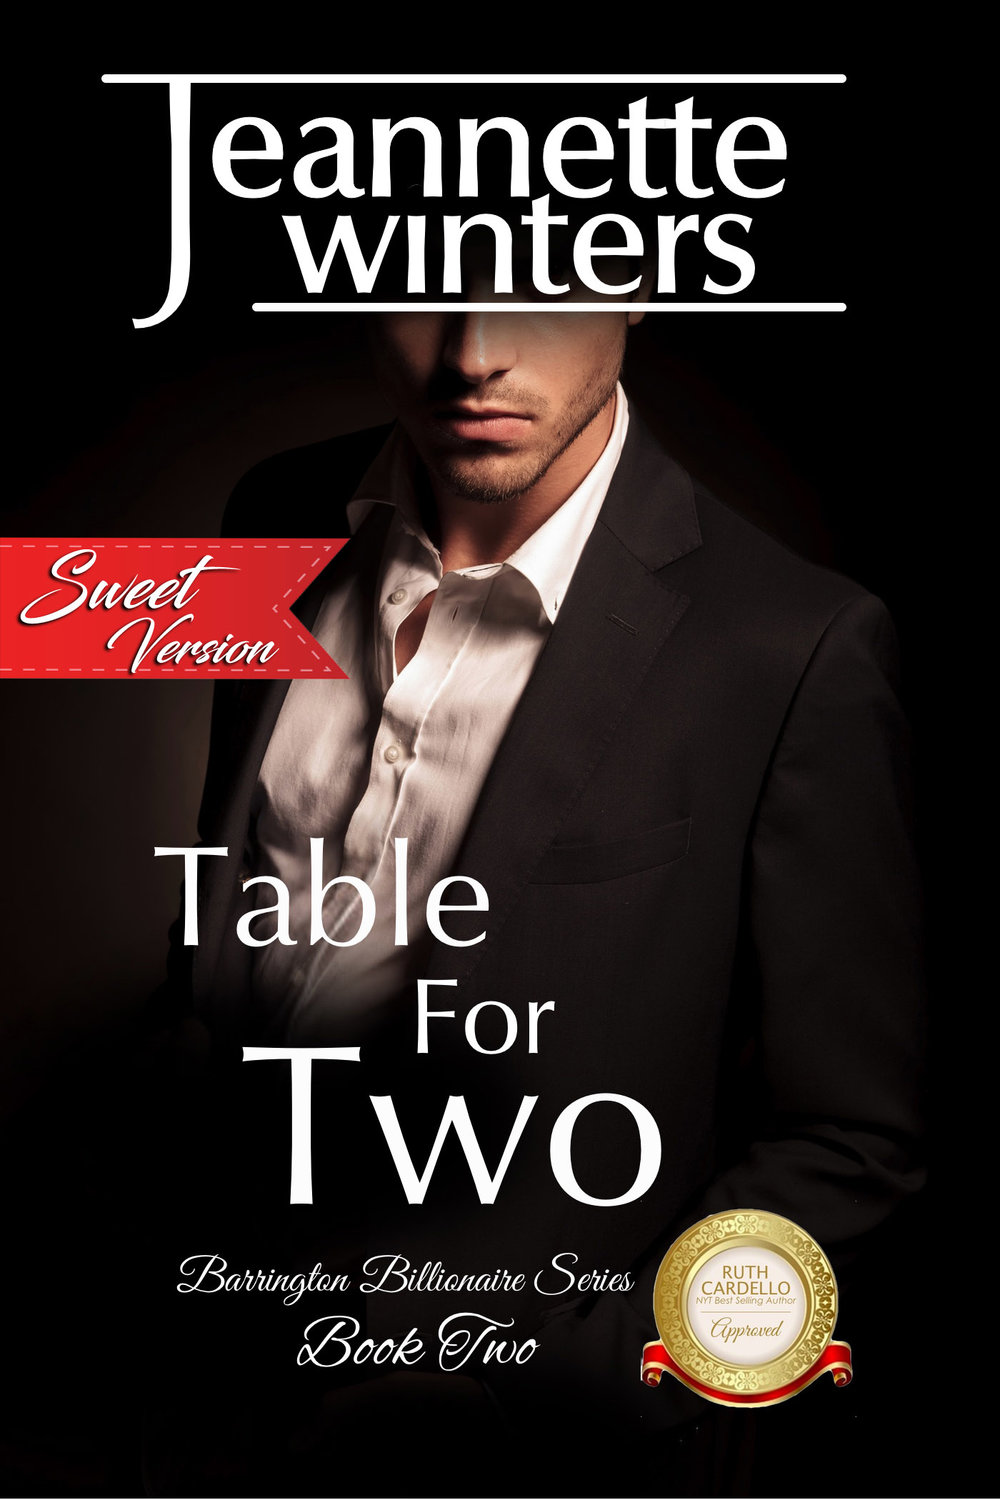 Table for Two Sweet Version.jpg